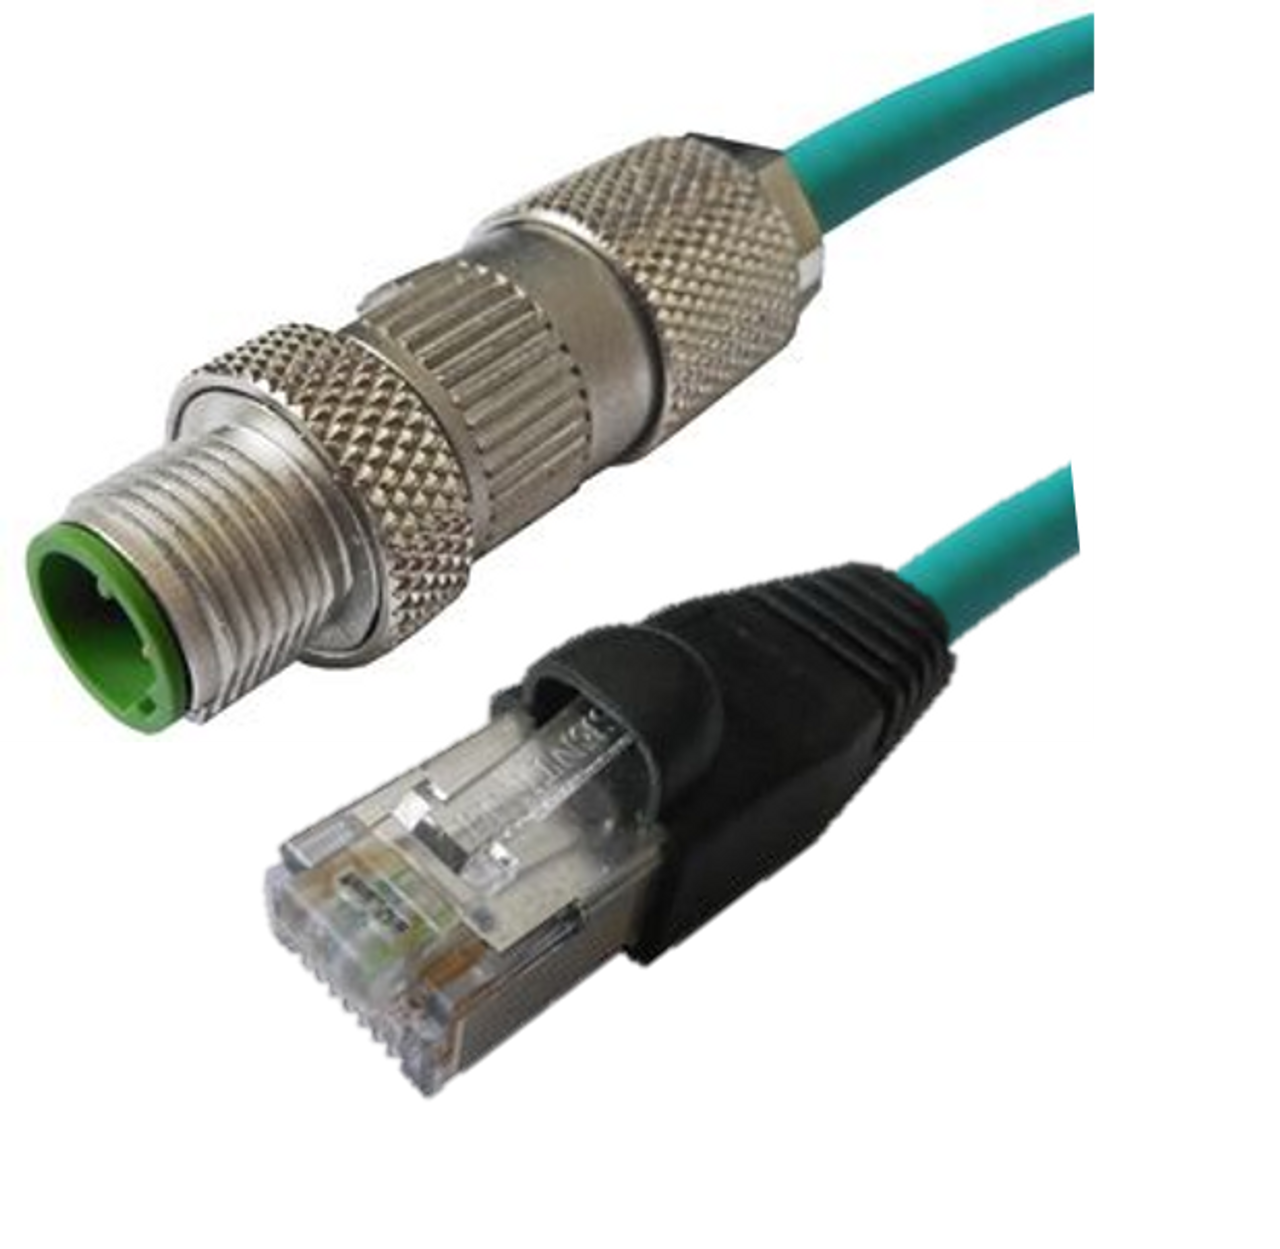 M12 4 Position IP67 D-Coded Male Straight to RJ45